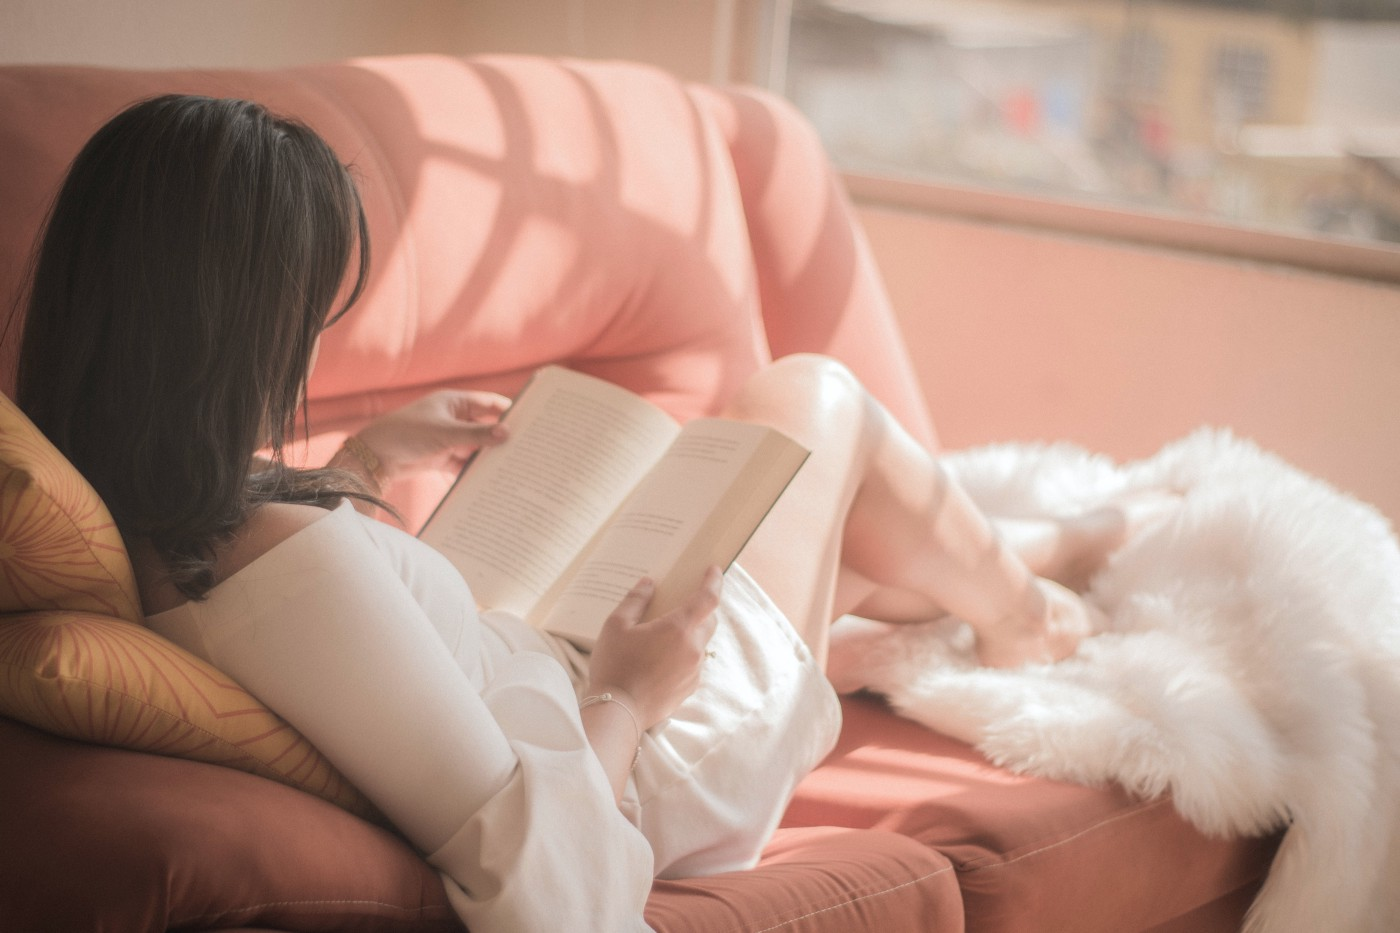 Woman with straight, dark brown hair in a white dress sitting on pink couch reading a book. Her feet are tucked into a white fluffy blanket and she is relaxed.